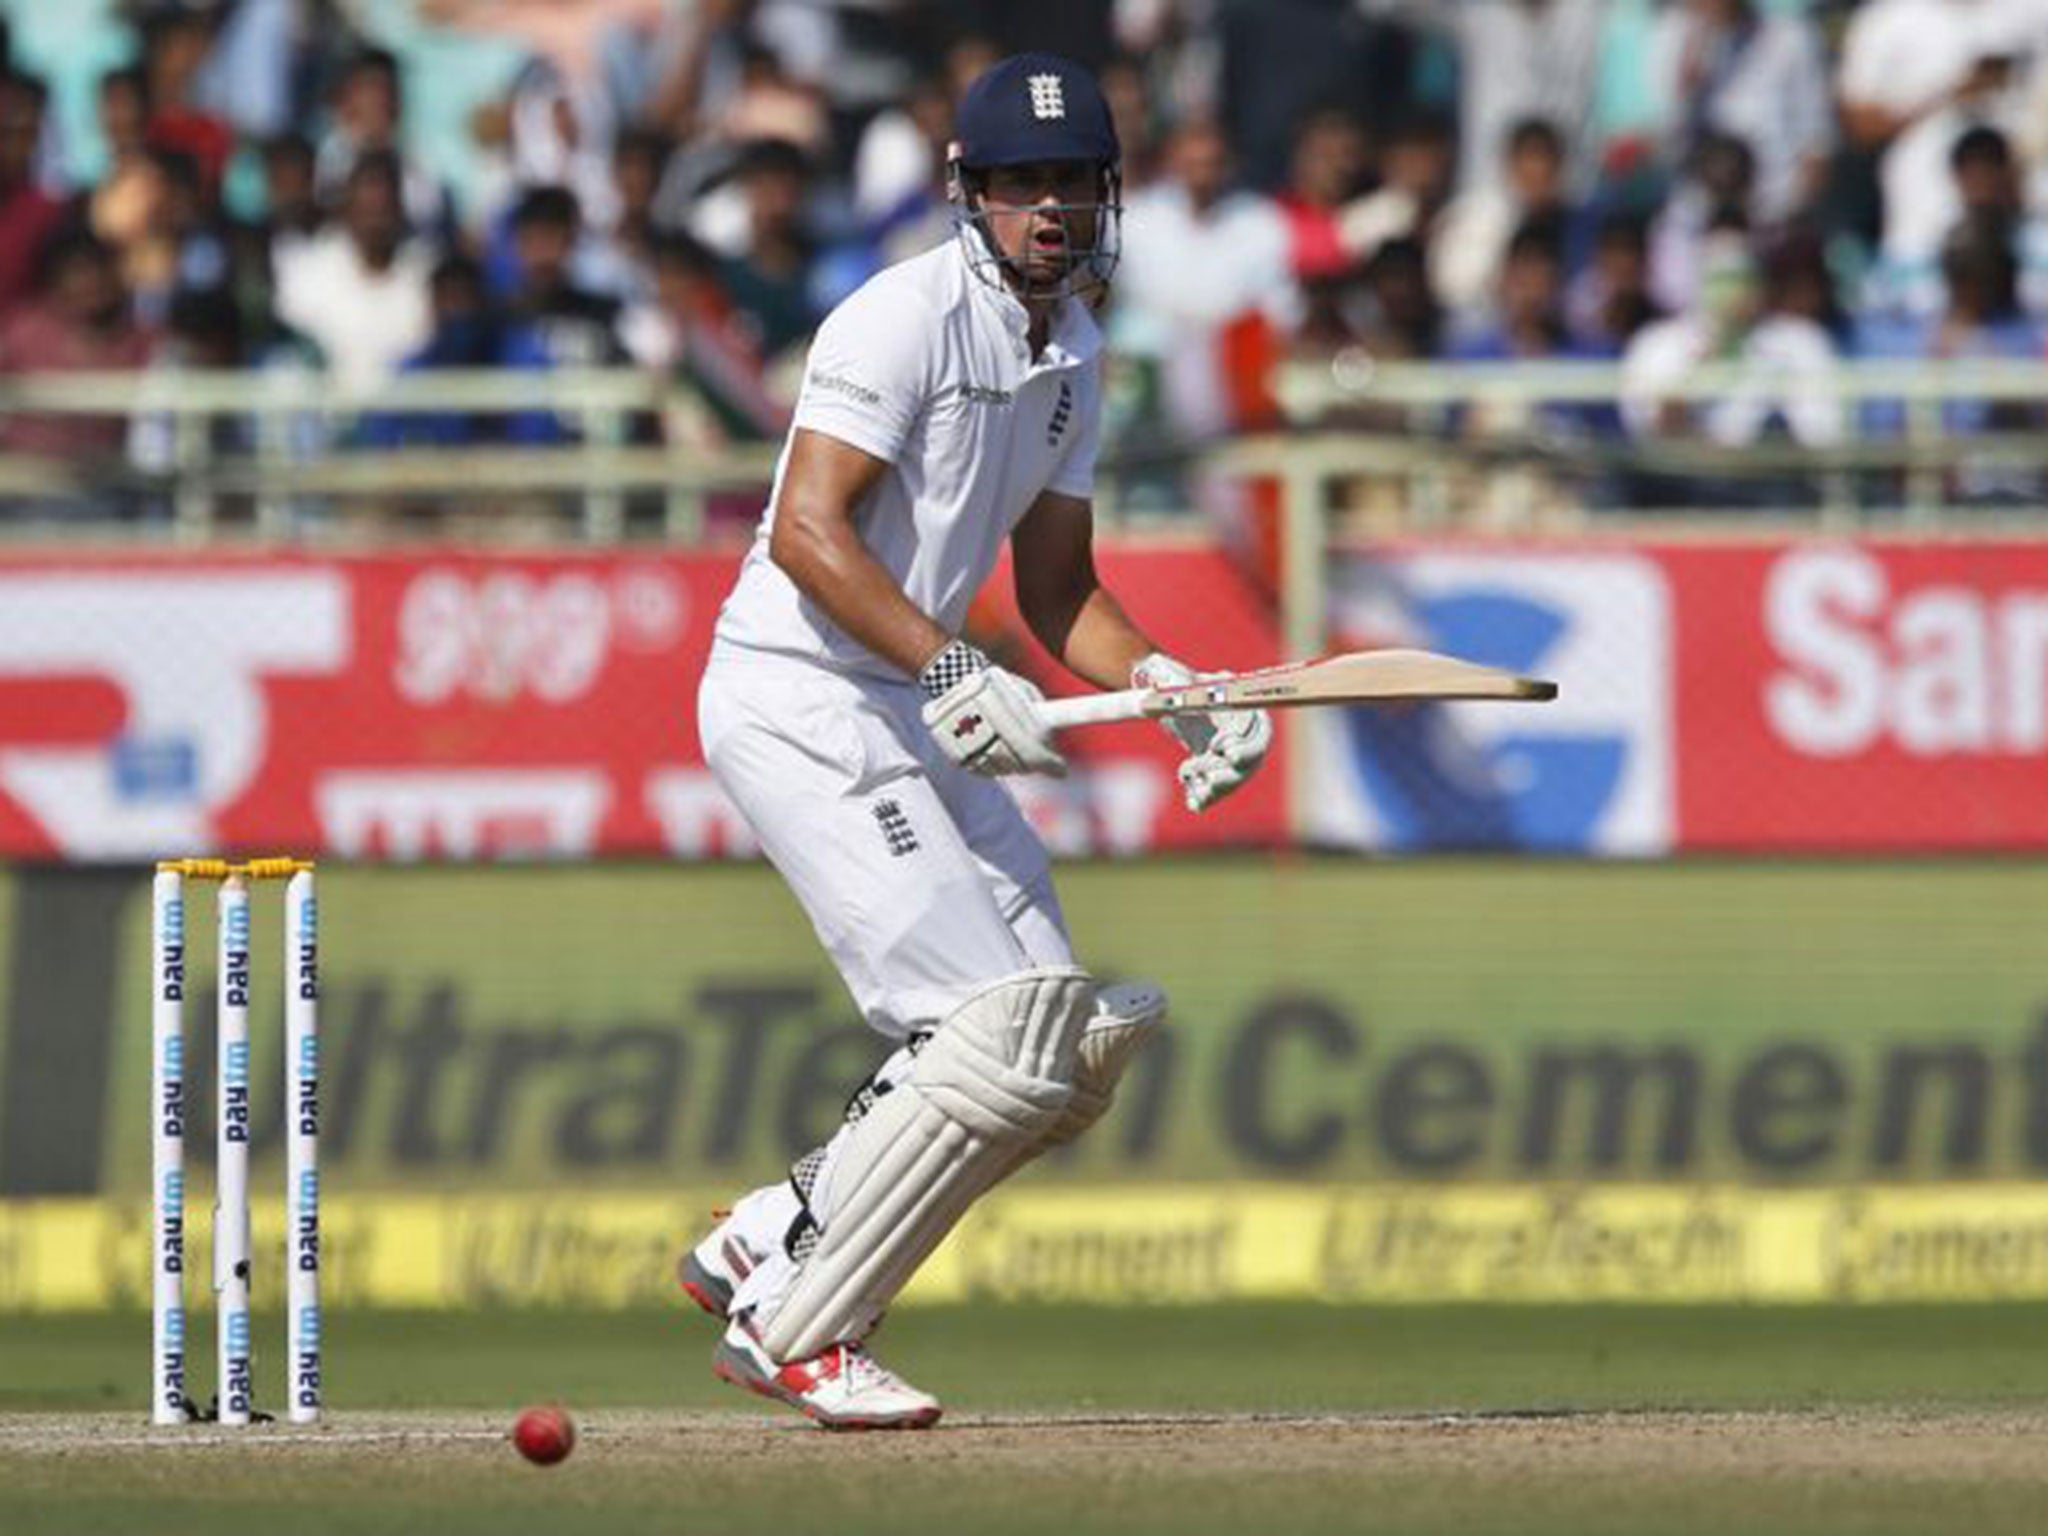 India vs england alastair cooks defiant stand falls with final india vs england alastair cooks defiant stand falls with final ball wicket but captain offers glimmer of hope the independent fandeluxe PDF